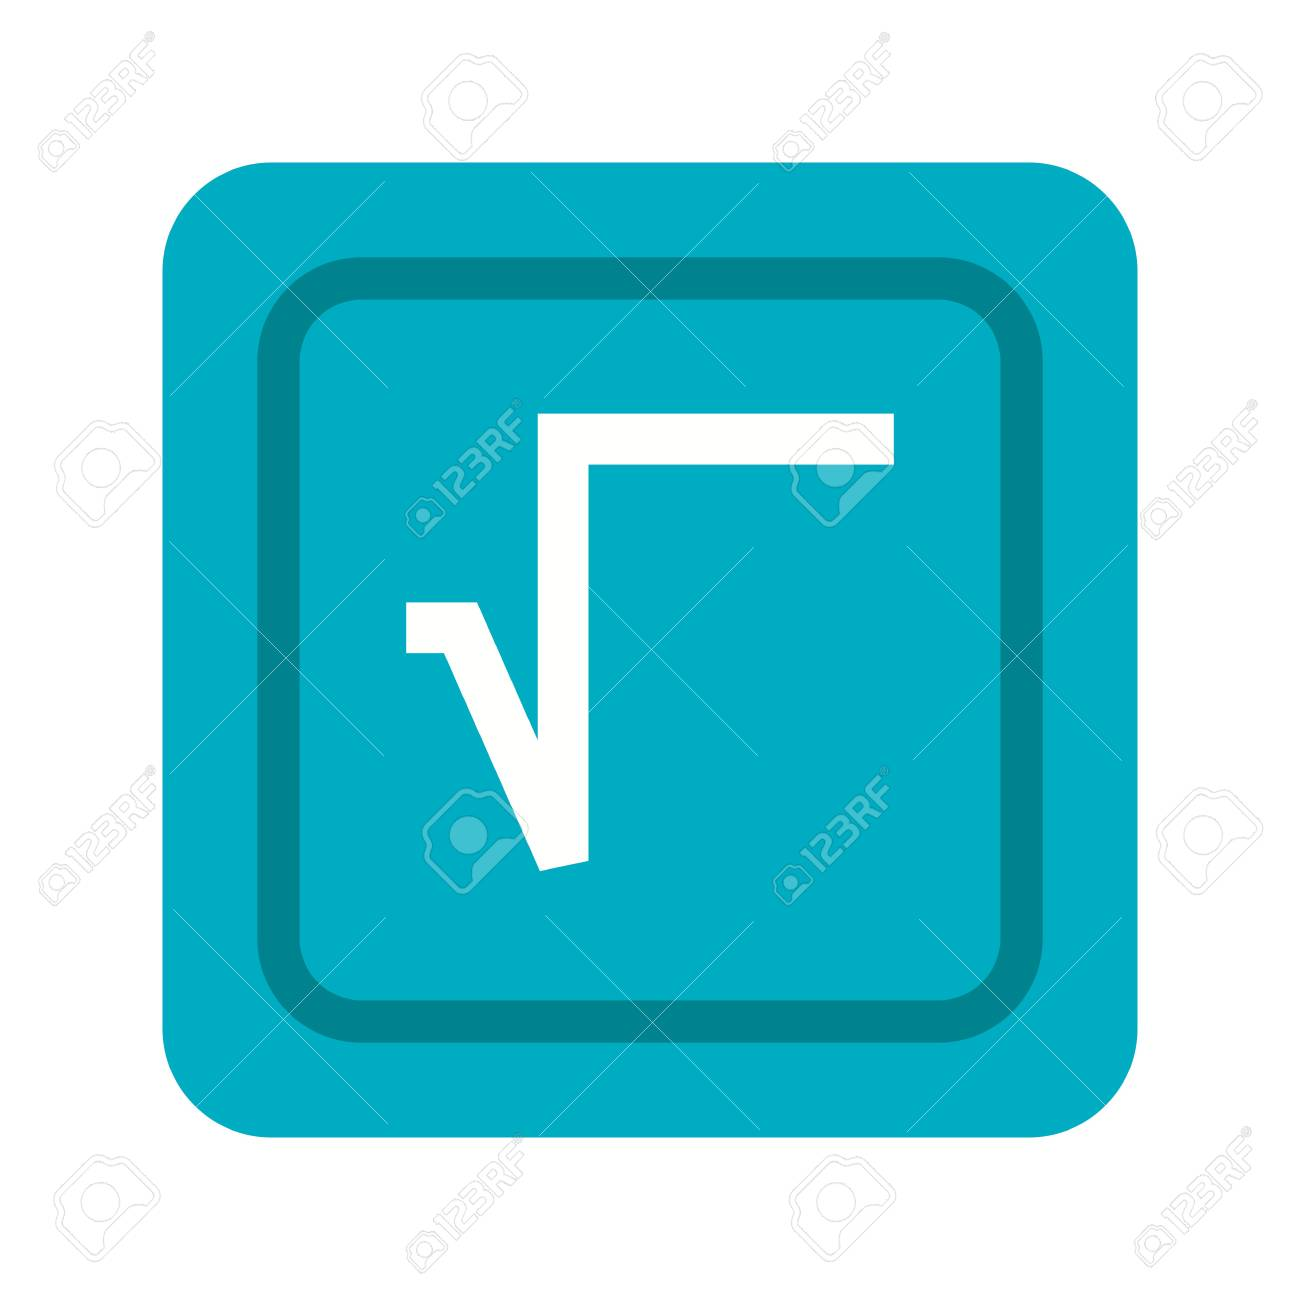 Square Root Symbol Royalty Free Cliparts Vectors And Stock